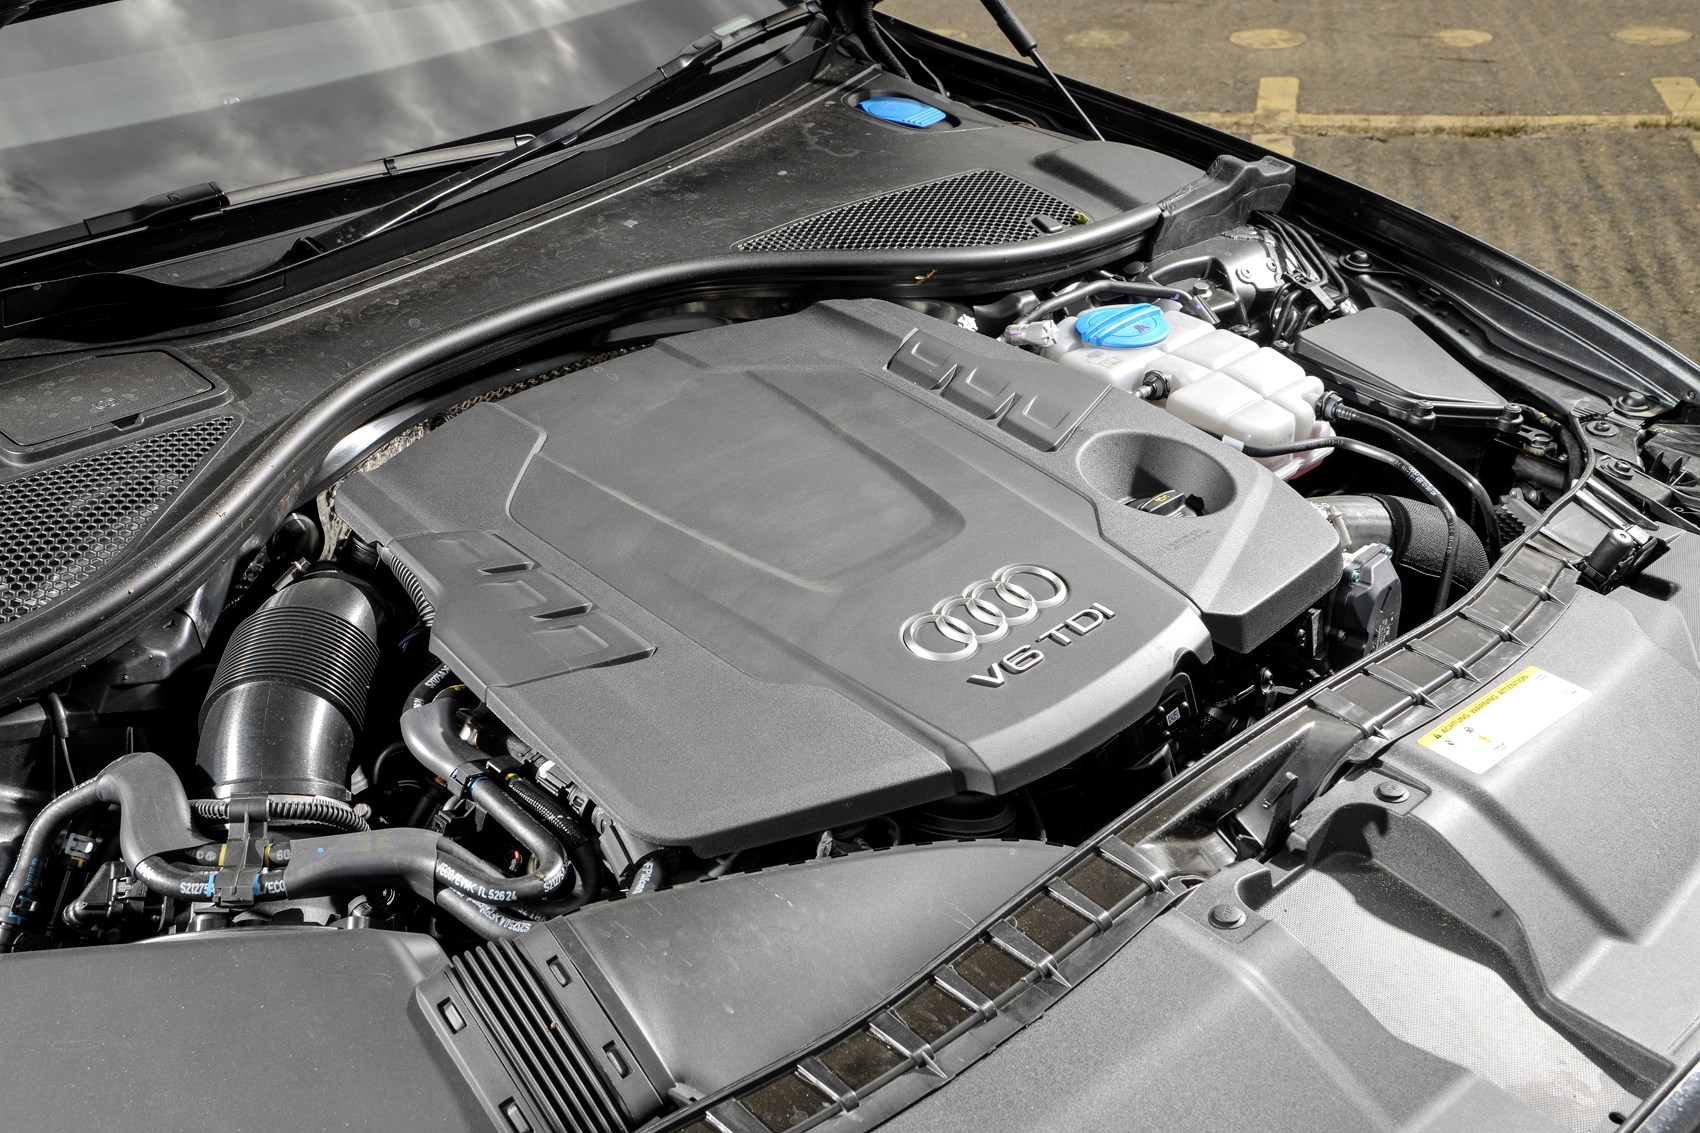 The A6's 3.0-litre TDI diesel engine might not look particularly interesting but its performance is startling